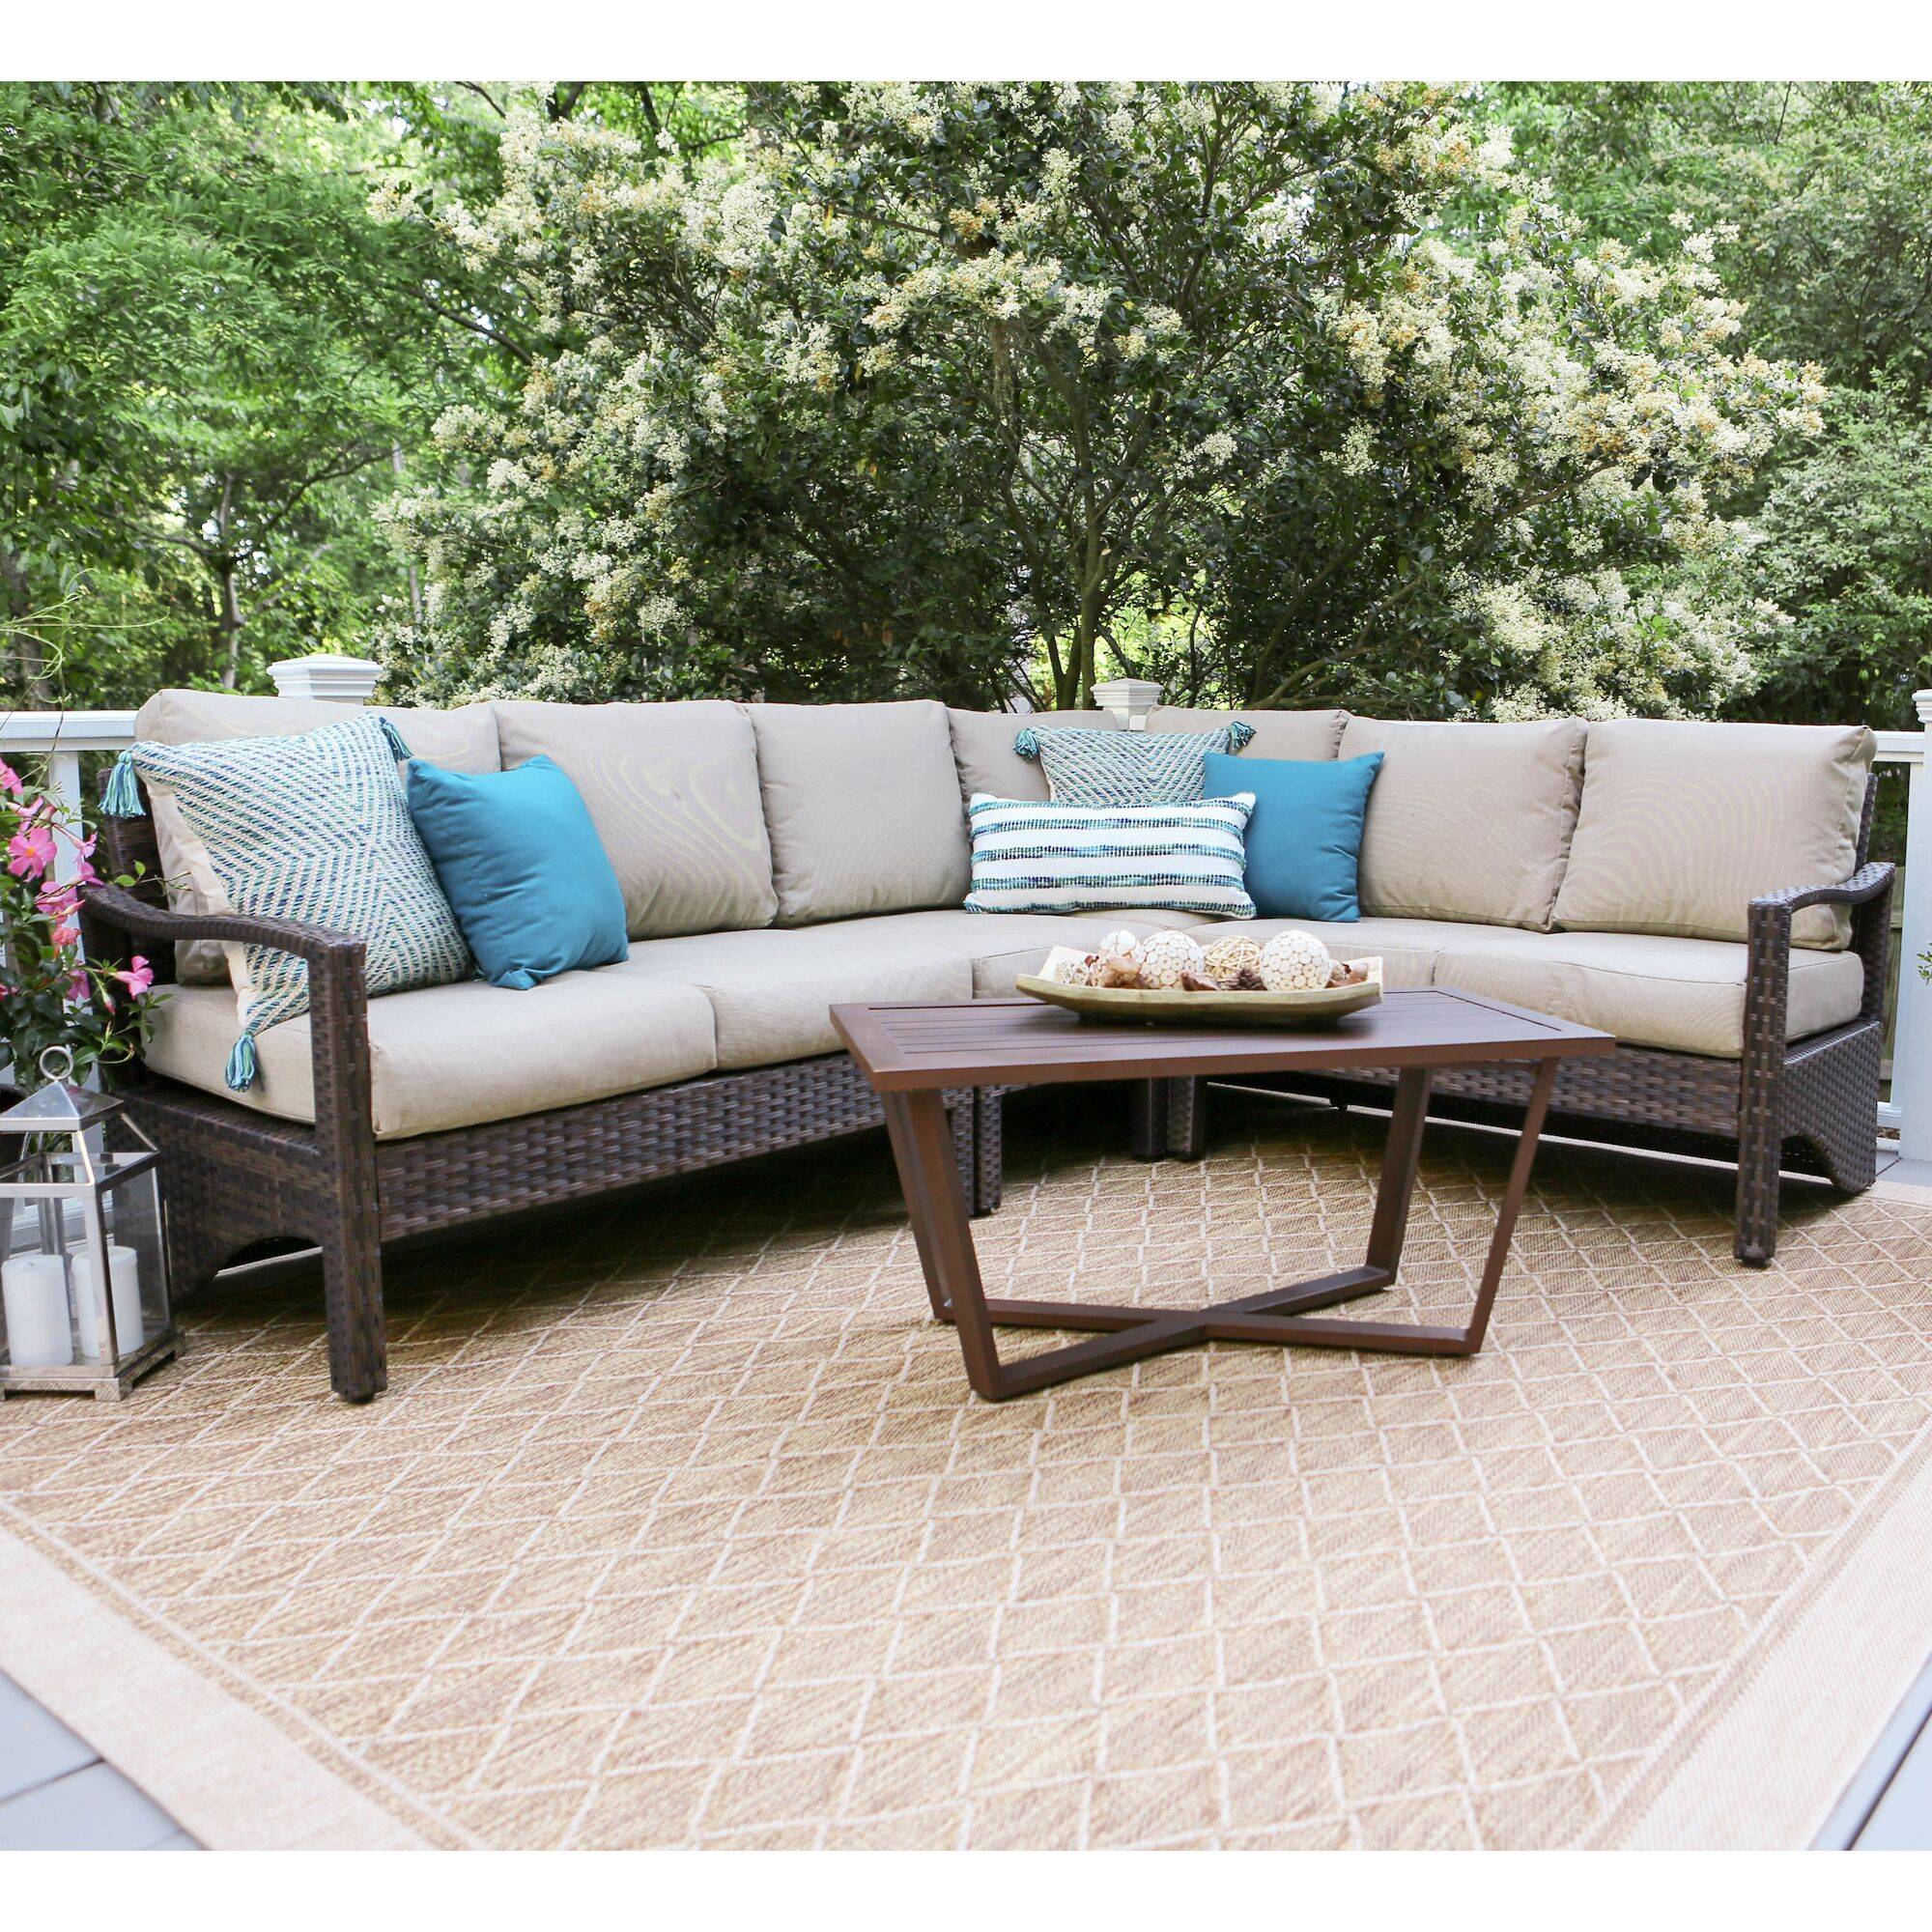 Augusta 5 Piece Sectional Set with Cushions Fabric: Tan